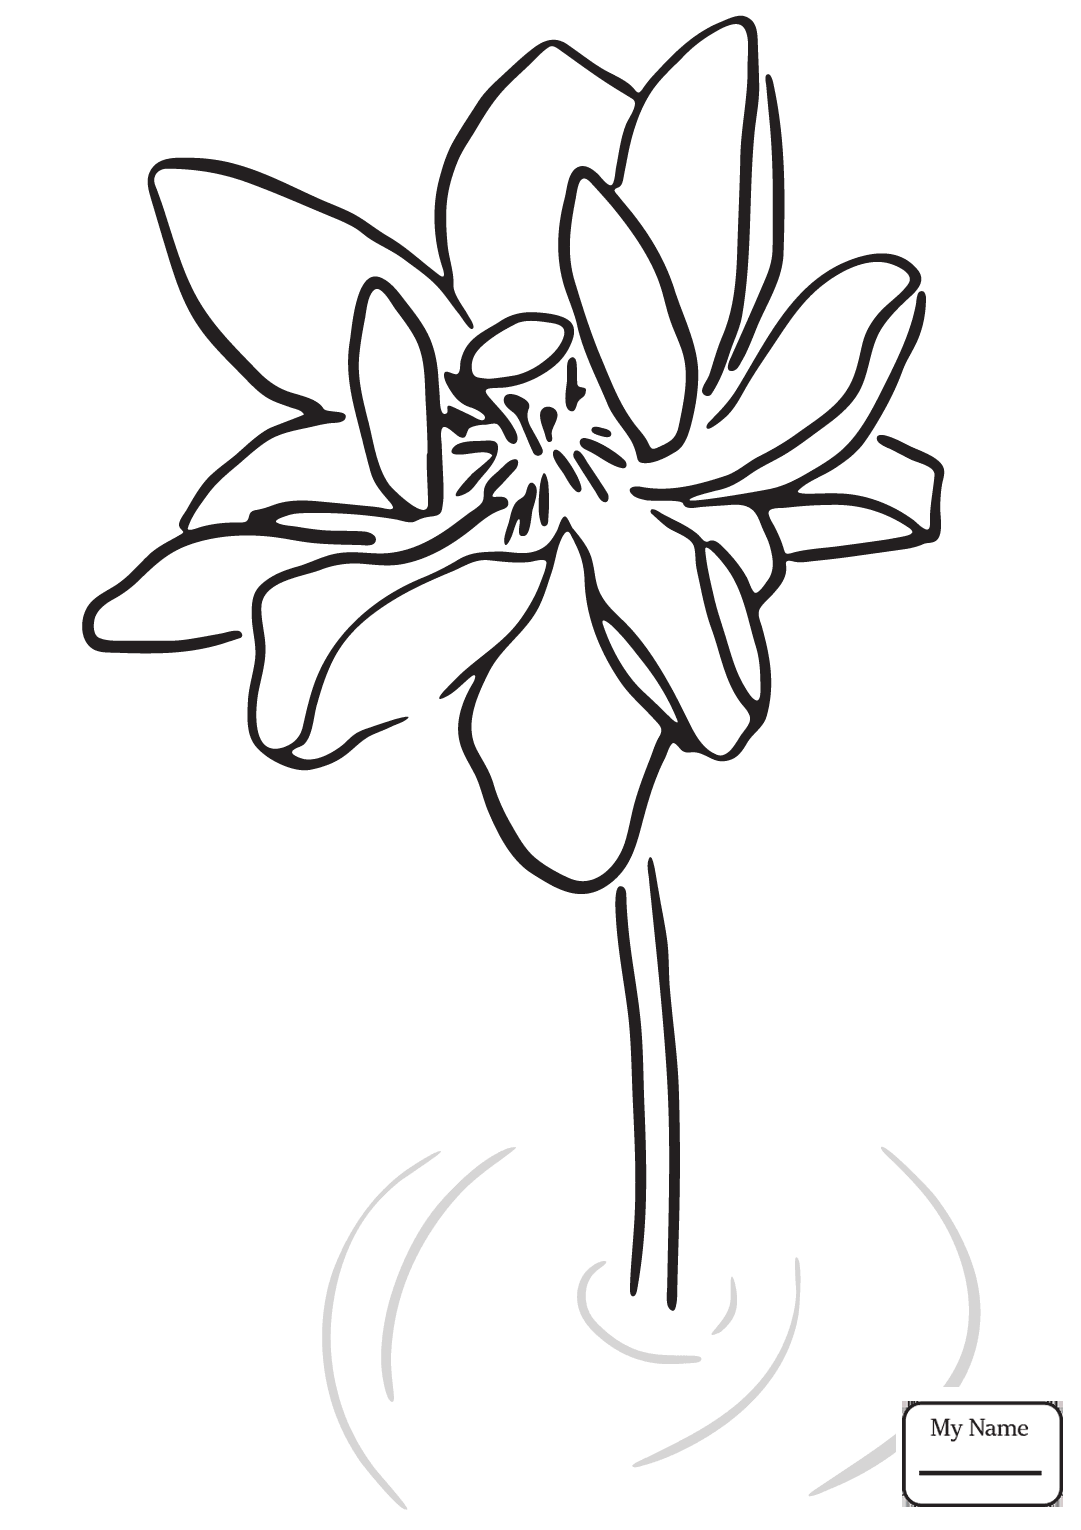 Japanese lotus flower drawing at getdrawings free for personal 1088x1500 japanese lotus flower tattoo designs 1081x1530 korin coloring pages korin tower izmirmasajfo Image collections